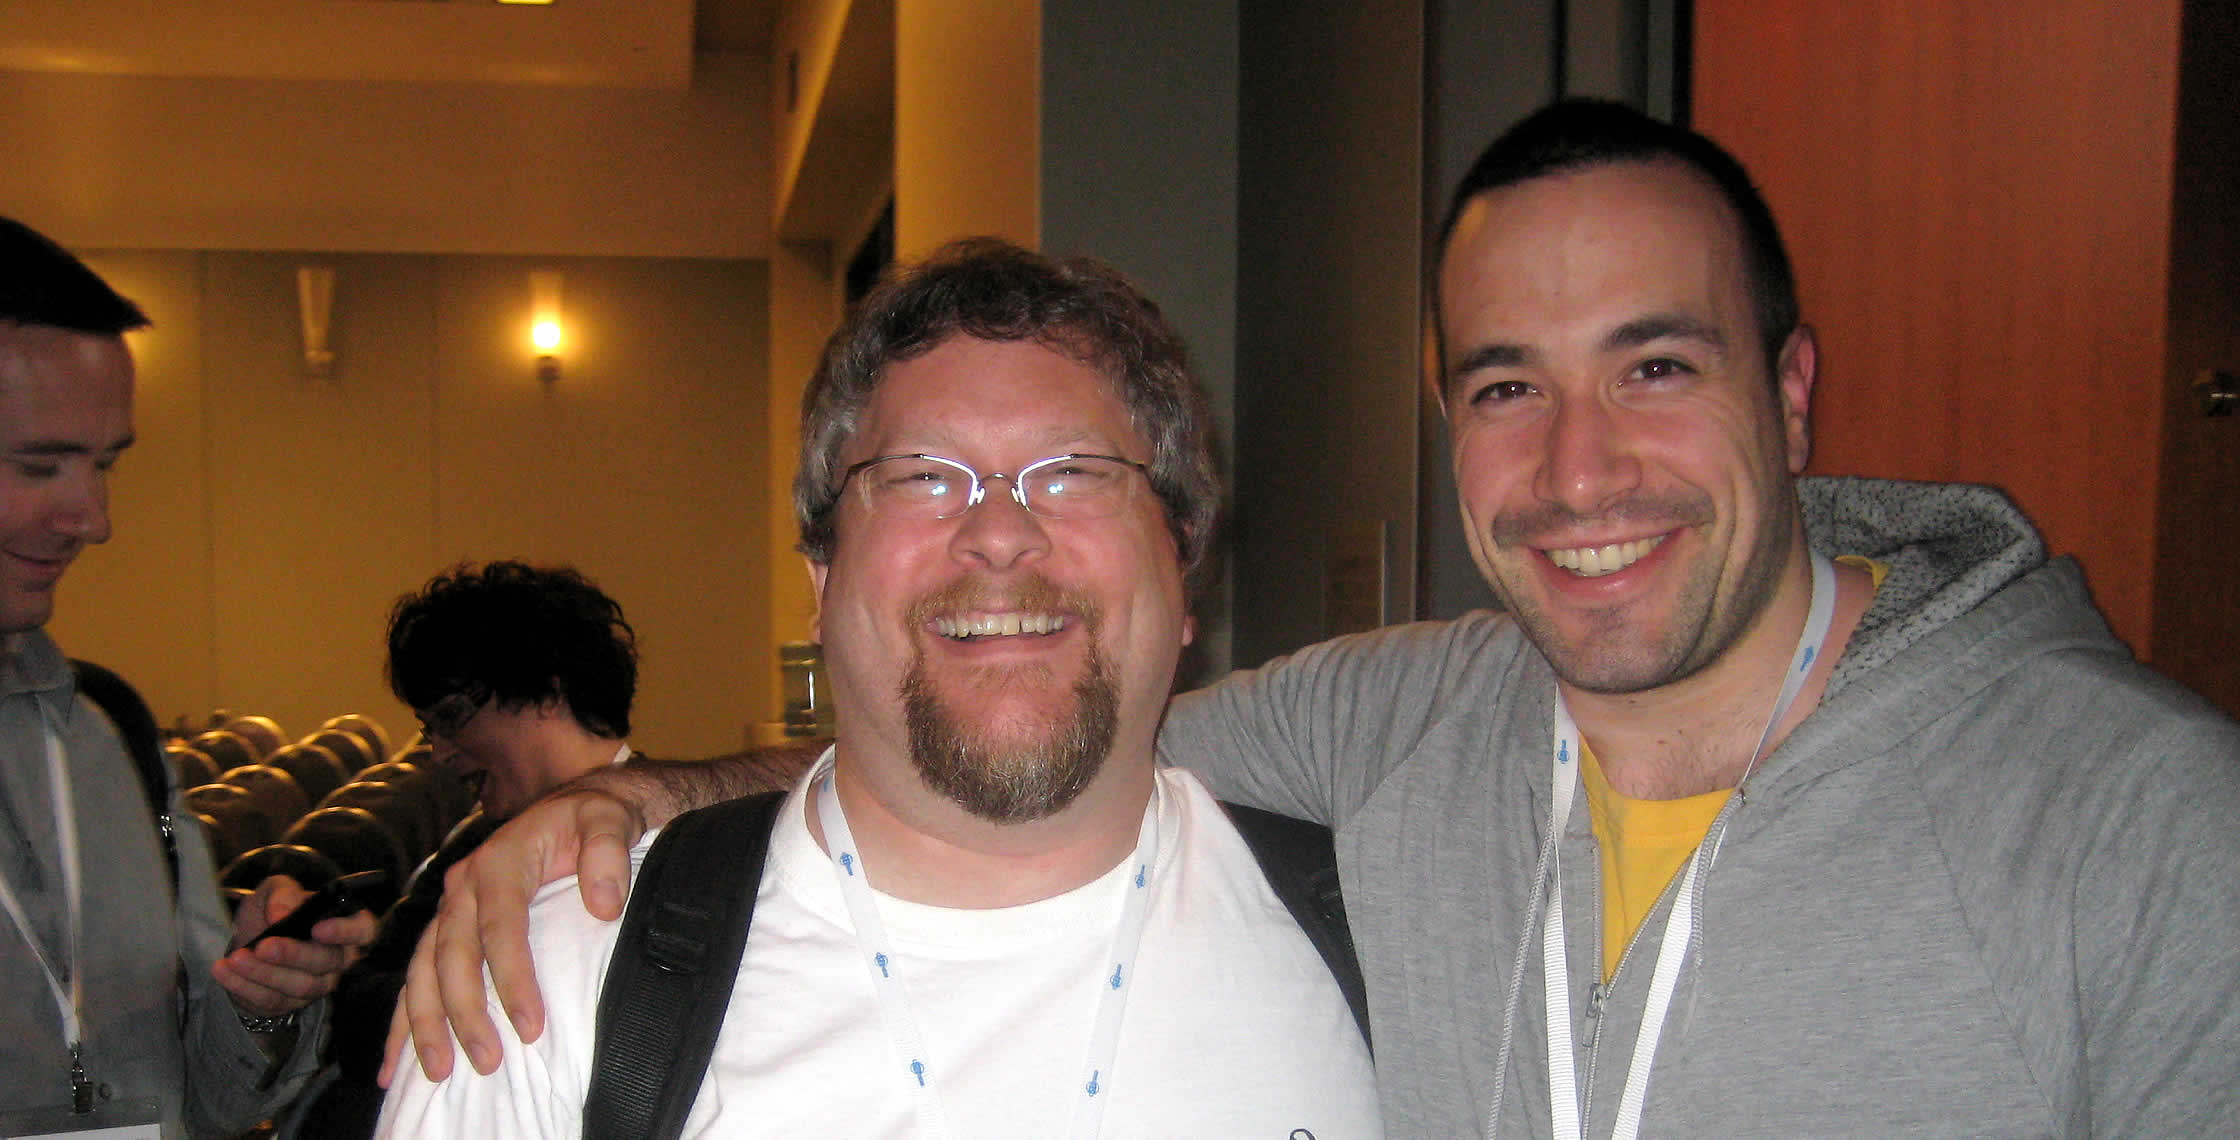 Ben Nadel at CFUNITED 2008 (Washington, D.C.) with: Sean Corfield